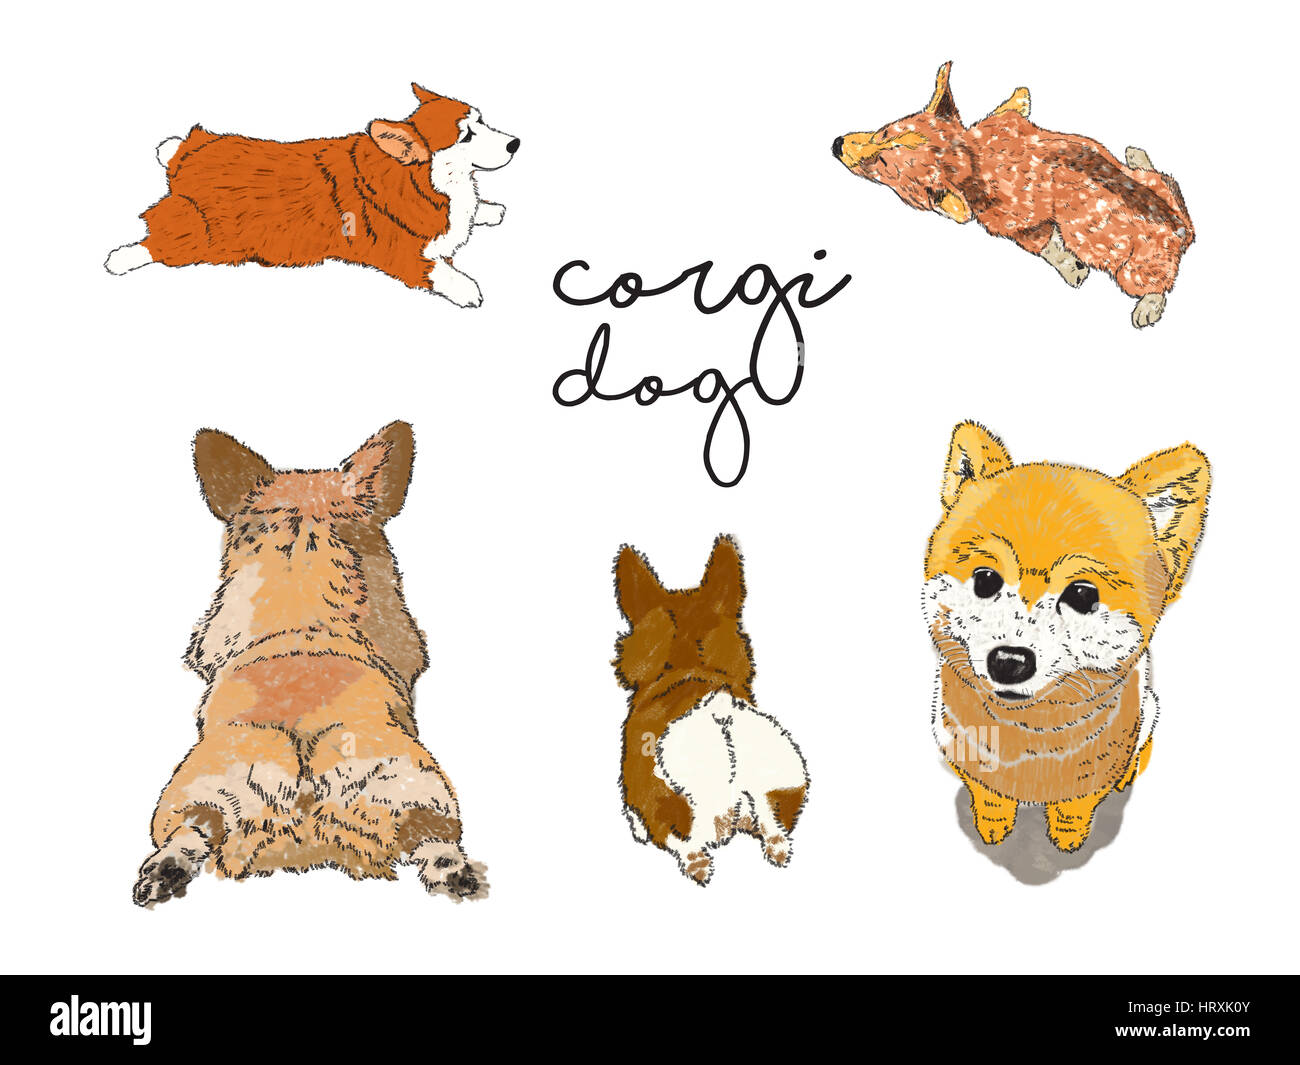 Corgi and Shiba dog illustration crated by without reference. - Stock Image